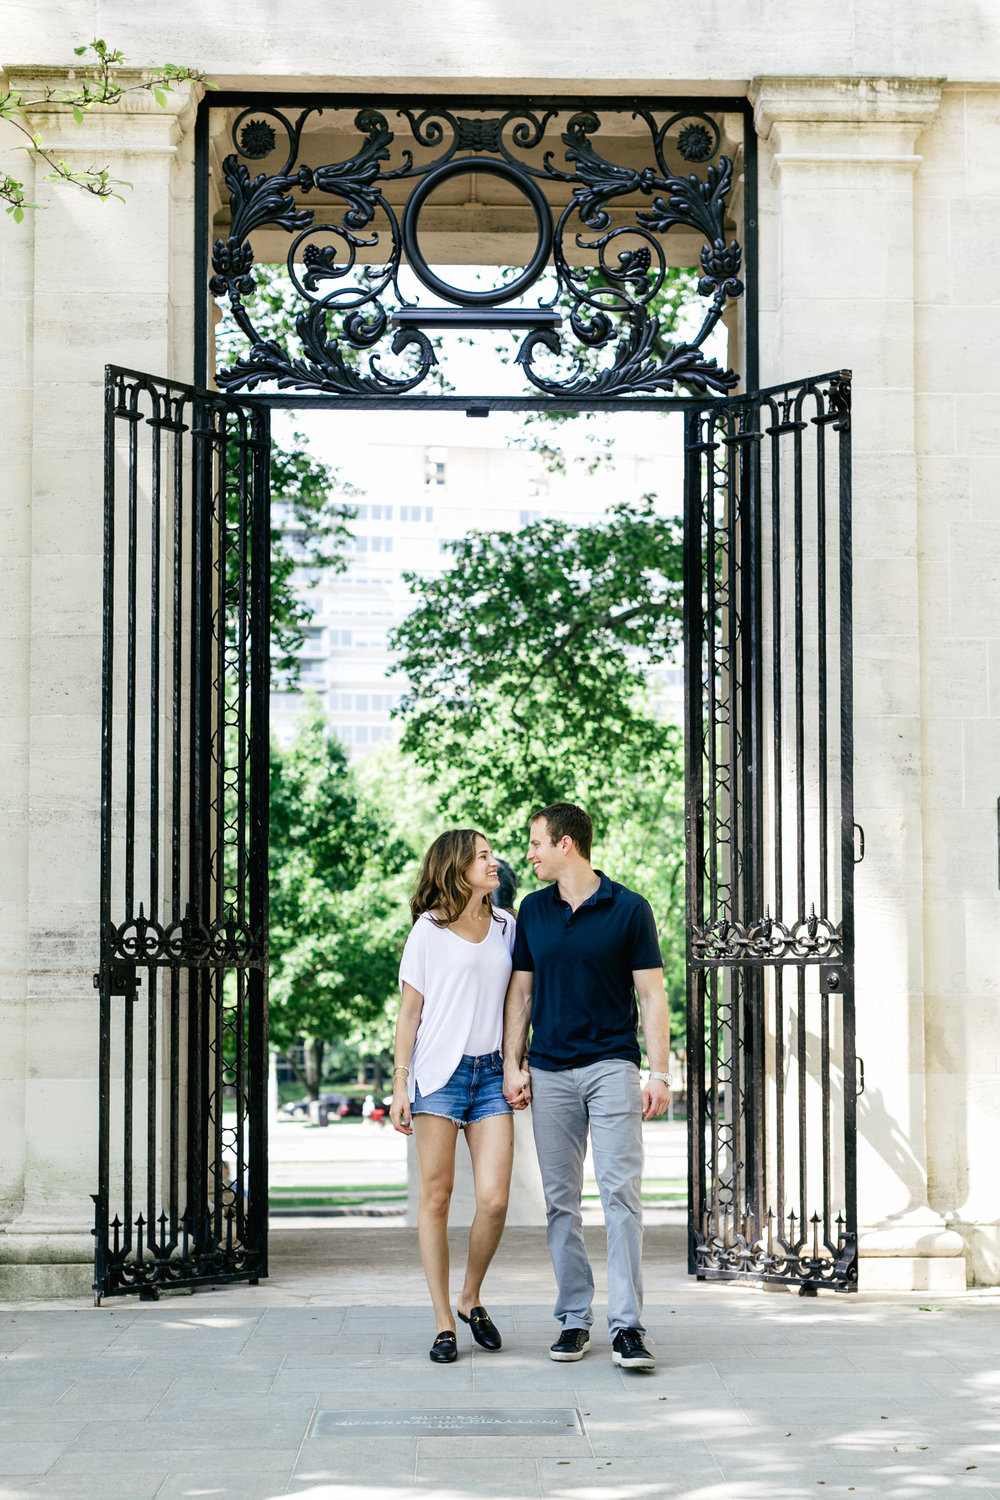 photography-natural-candid-engaged-proposal-philadelphia-wedding-rodin museum-barnes foundation-parkway-modern-lifestyle-09.JPG